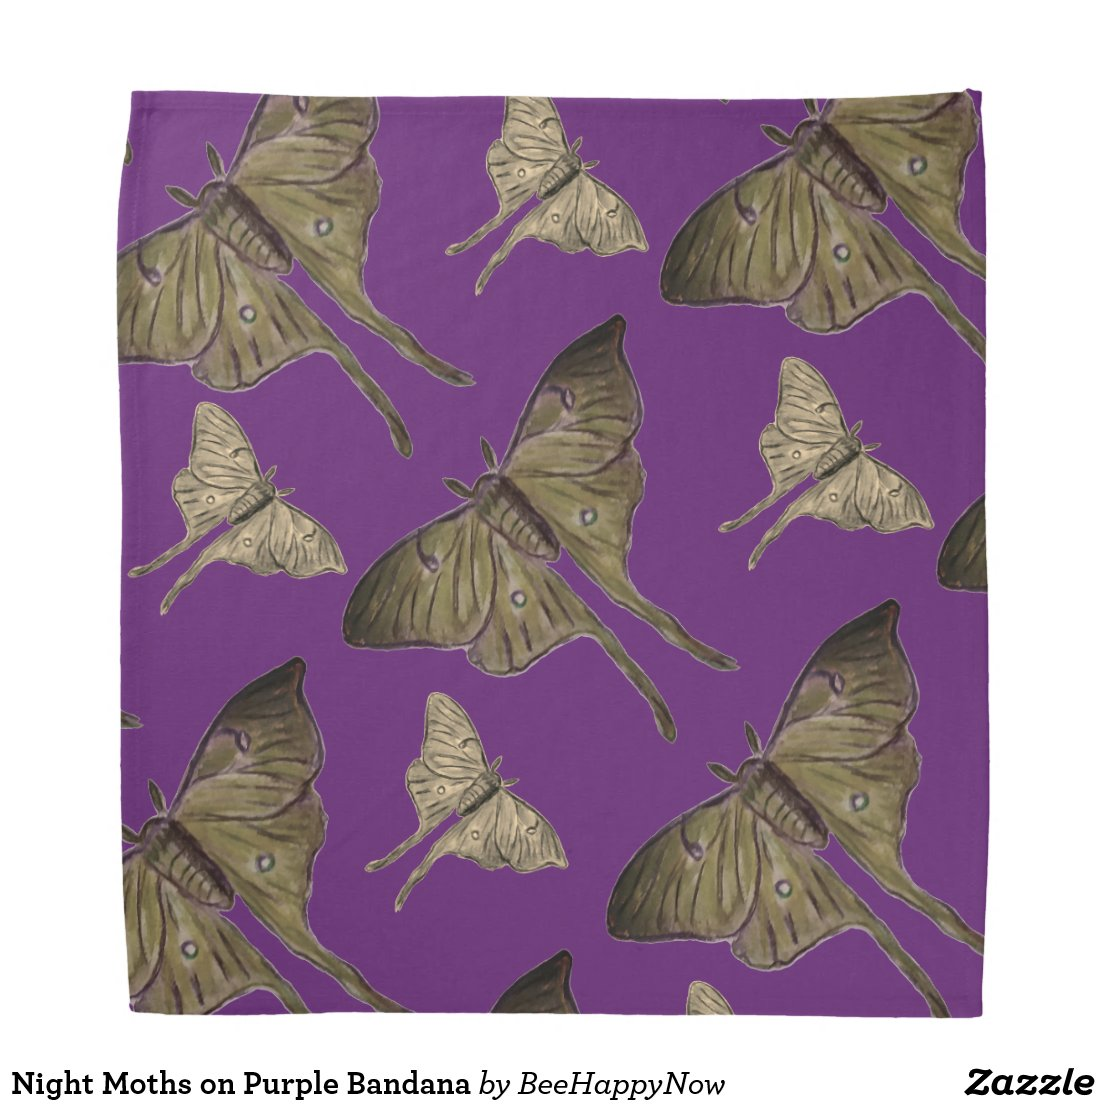 Night Moths on Purple Bandana